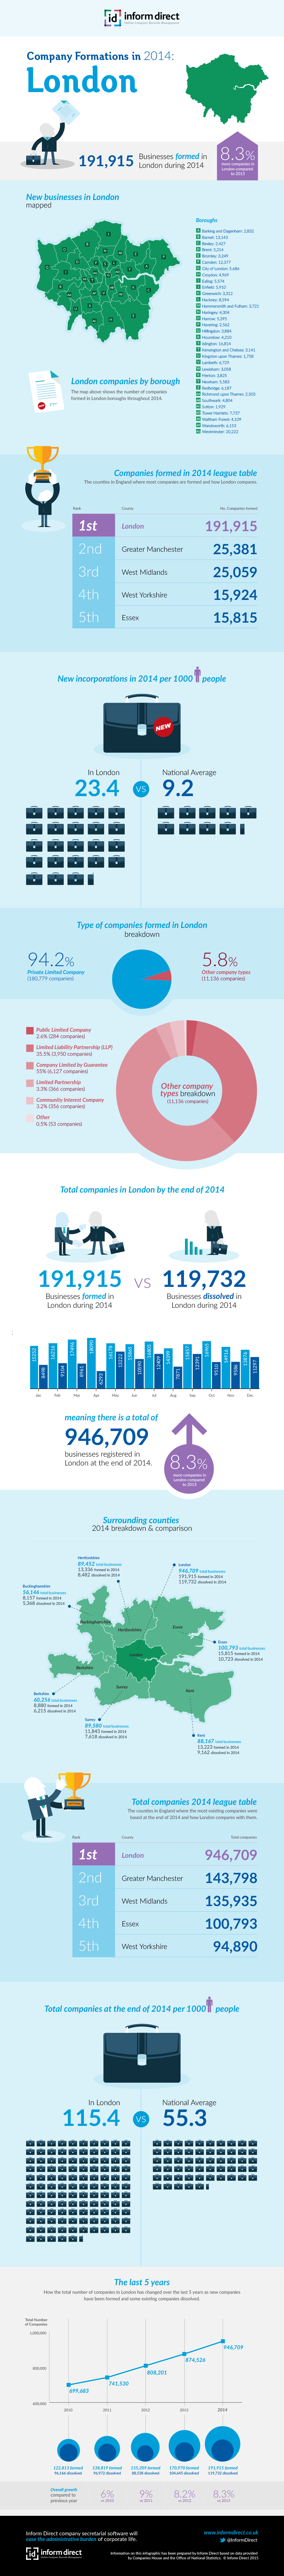 Inform Direct - Company Formations in London 2014 Infographic